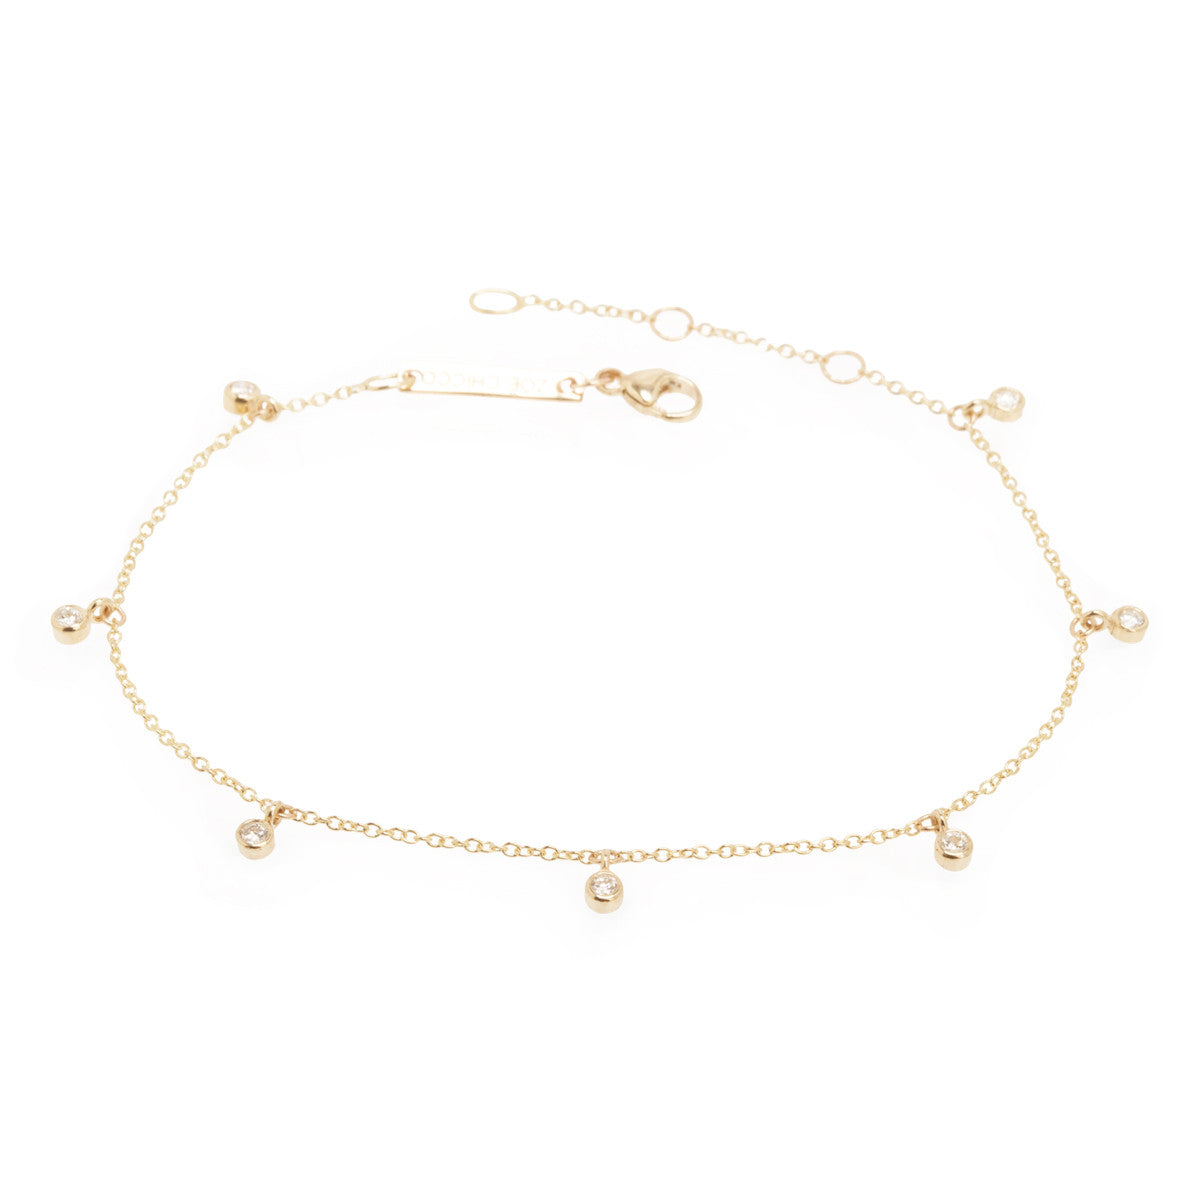 accessories jewelry new yellow aliexpress women charms anklets in anklet color foot com girls from bell plated gold dance bracelet for on item